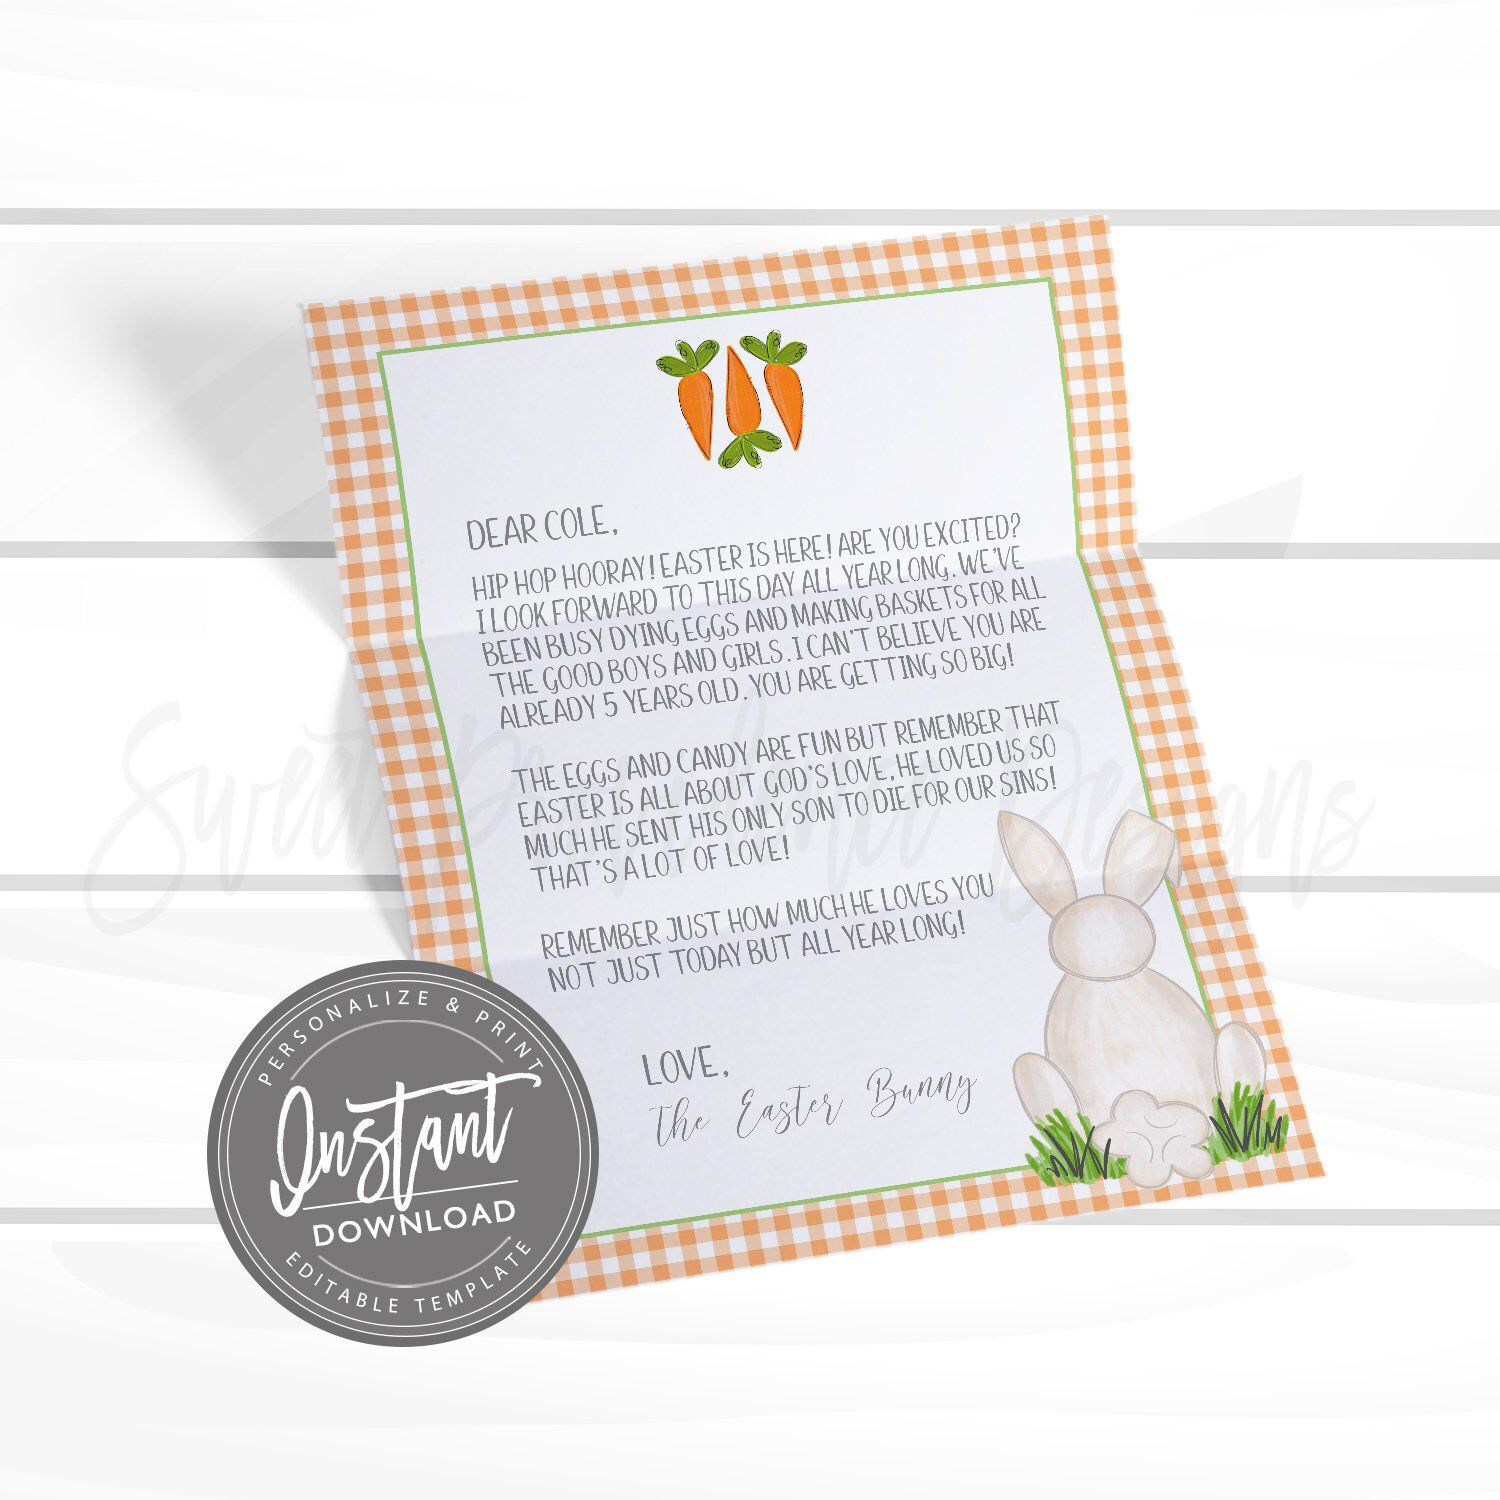 44+ Easter bunny letter template free ideas in 2021